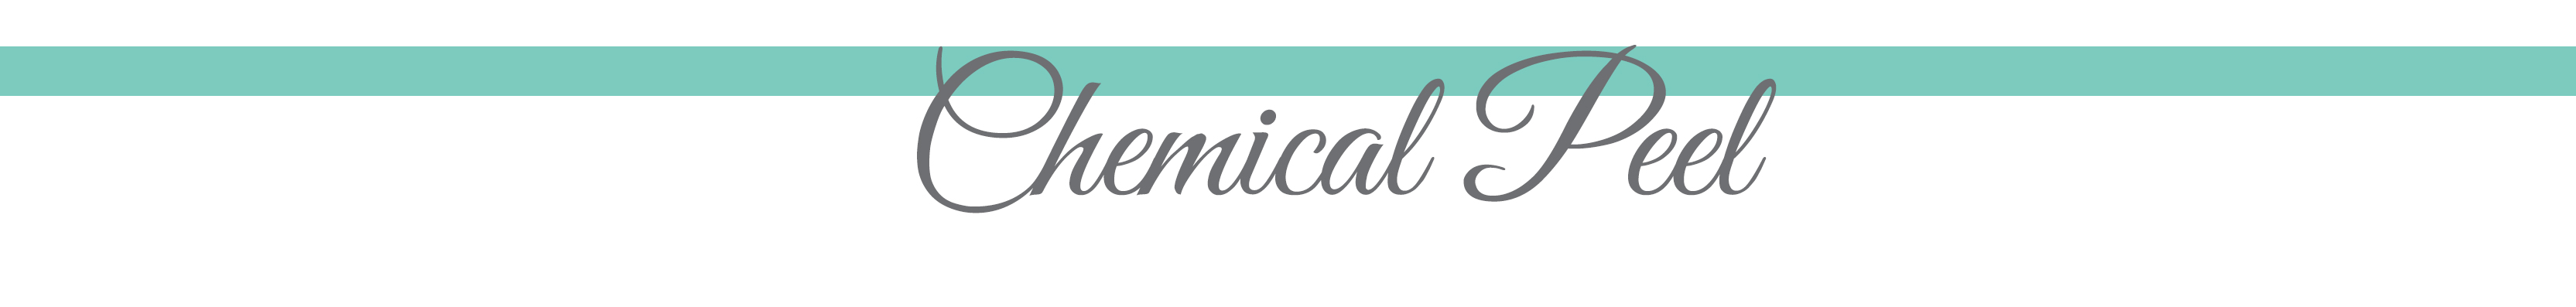 2. CHEMICAL PEEL